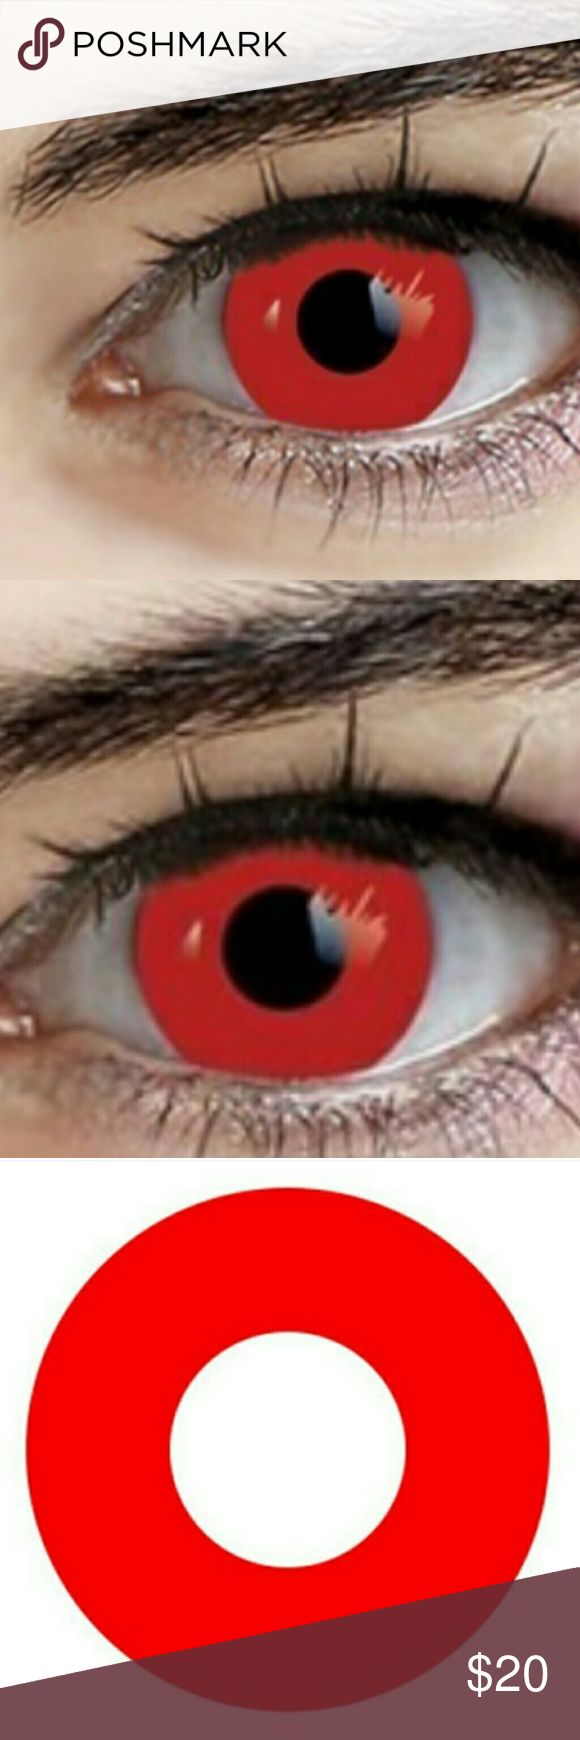 Cosplay Red Contacts Red contact lenses non prescription. No prescription needed.Great for cosplay, halloween,or just for freaking out your friends! 12 month contacts with proper care. A free contact lense case to store them in. Accessories Glasses